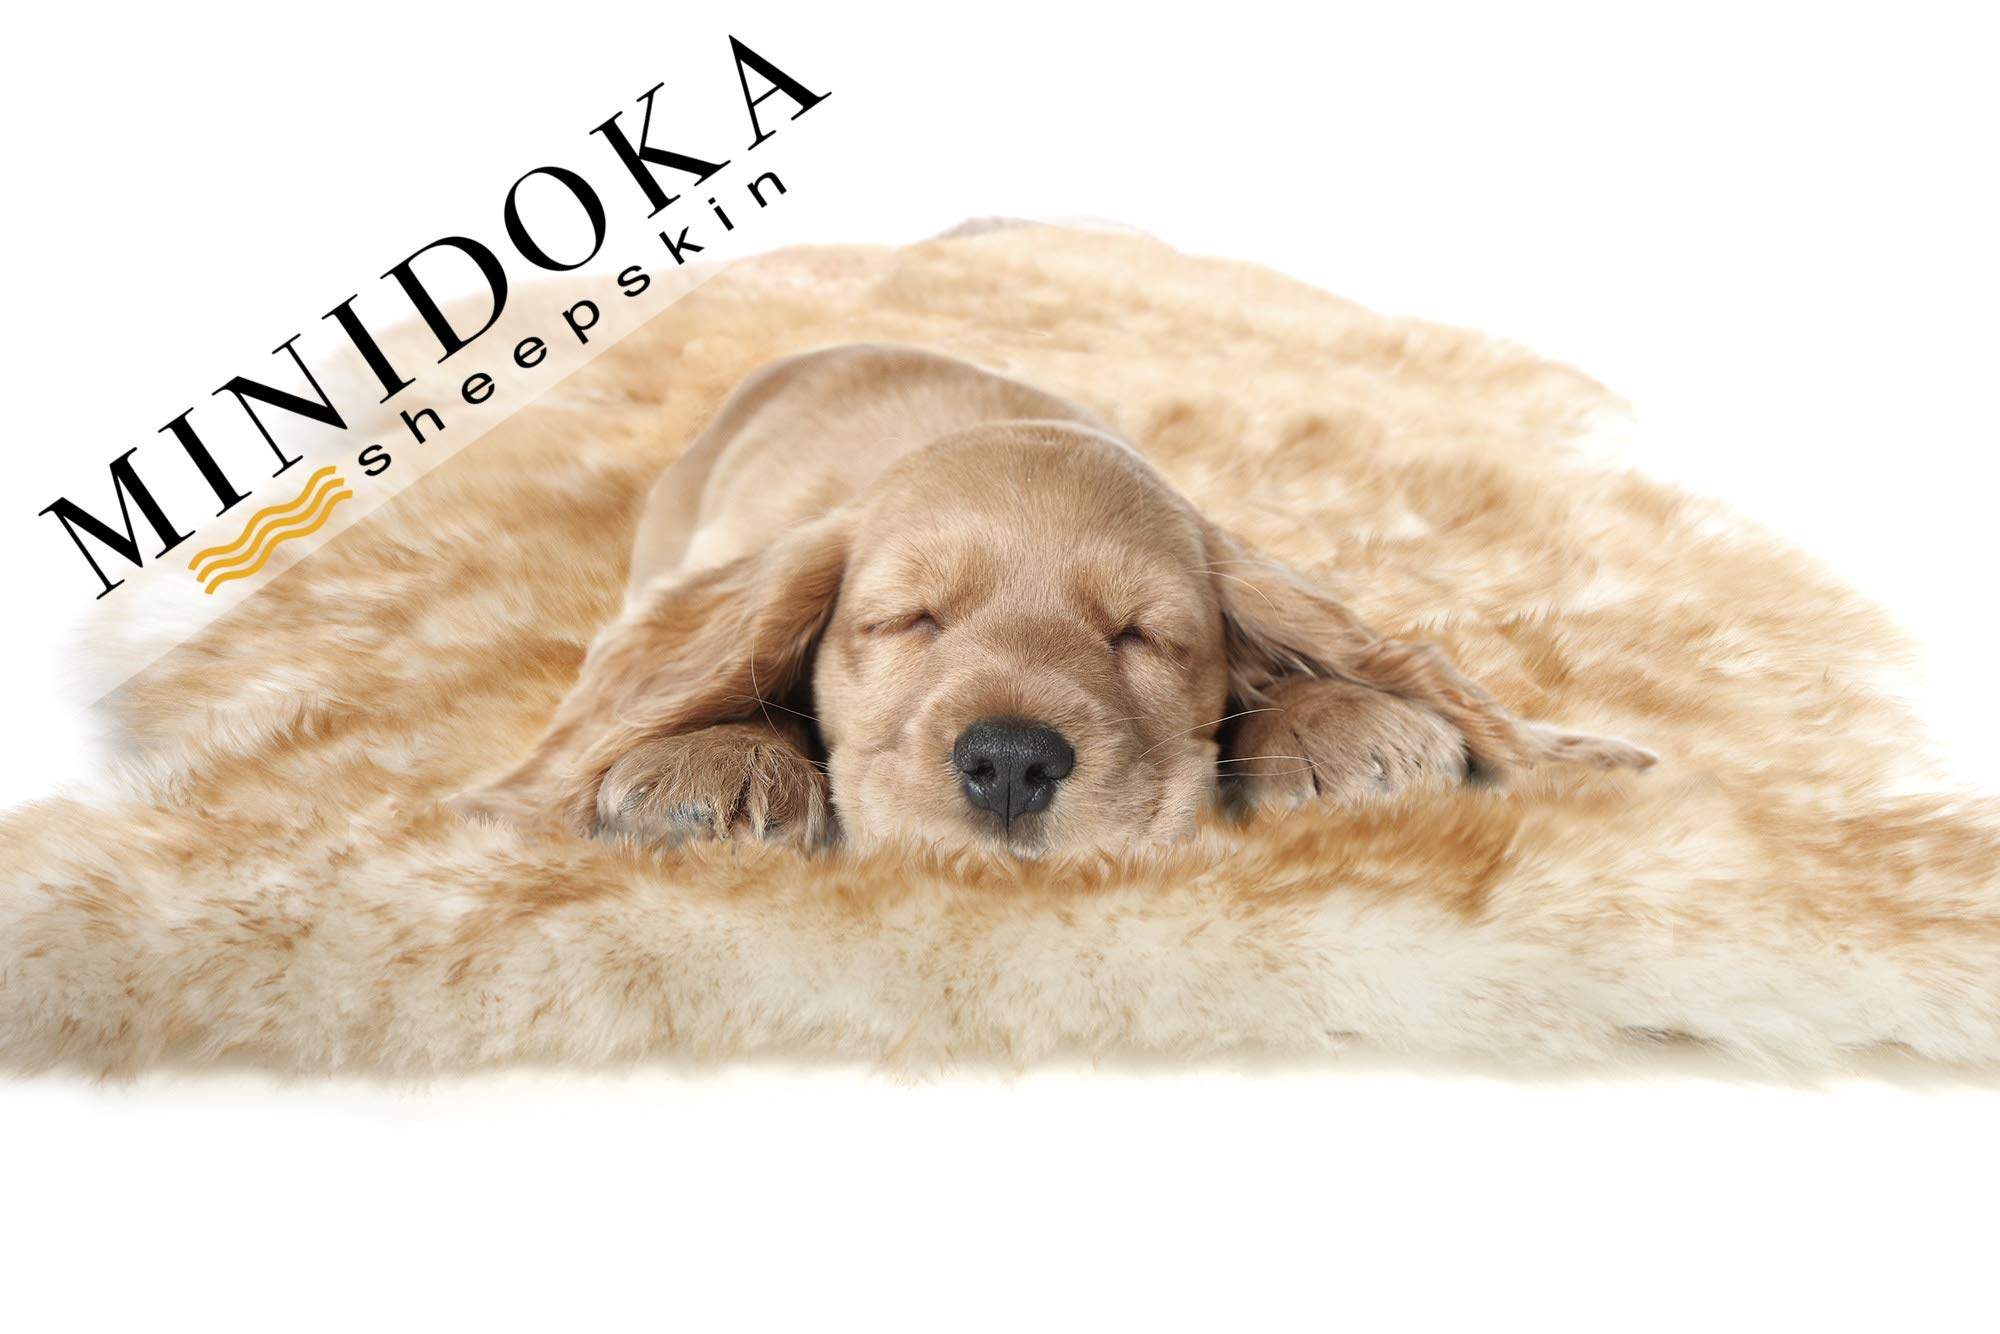 Desert Breeze Distributing Minidoka Sheepskin Pet Bed, Amber Tipped Spring Lamb Pelt, for Dog or Cat, Natural Length Silky Soft Wool